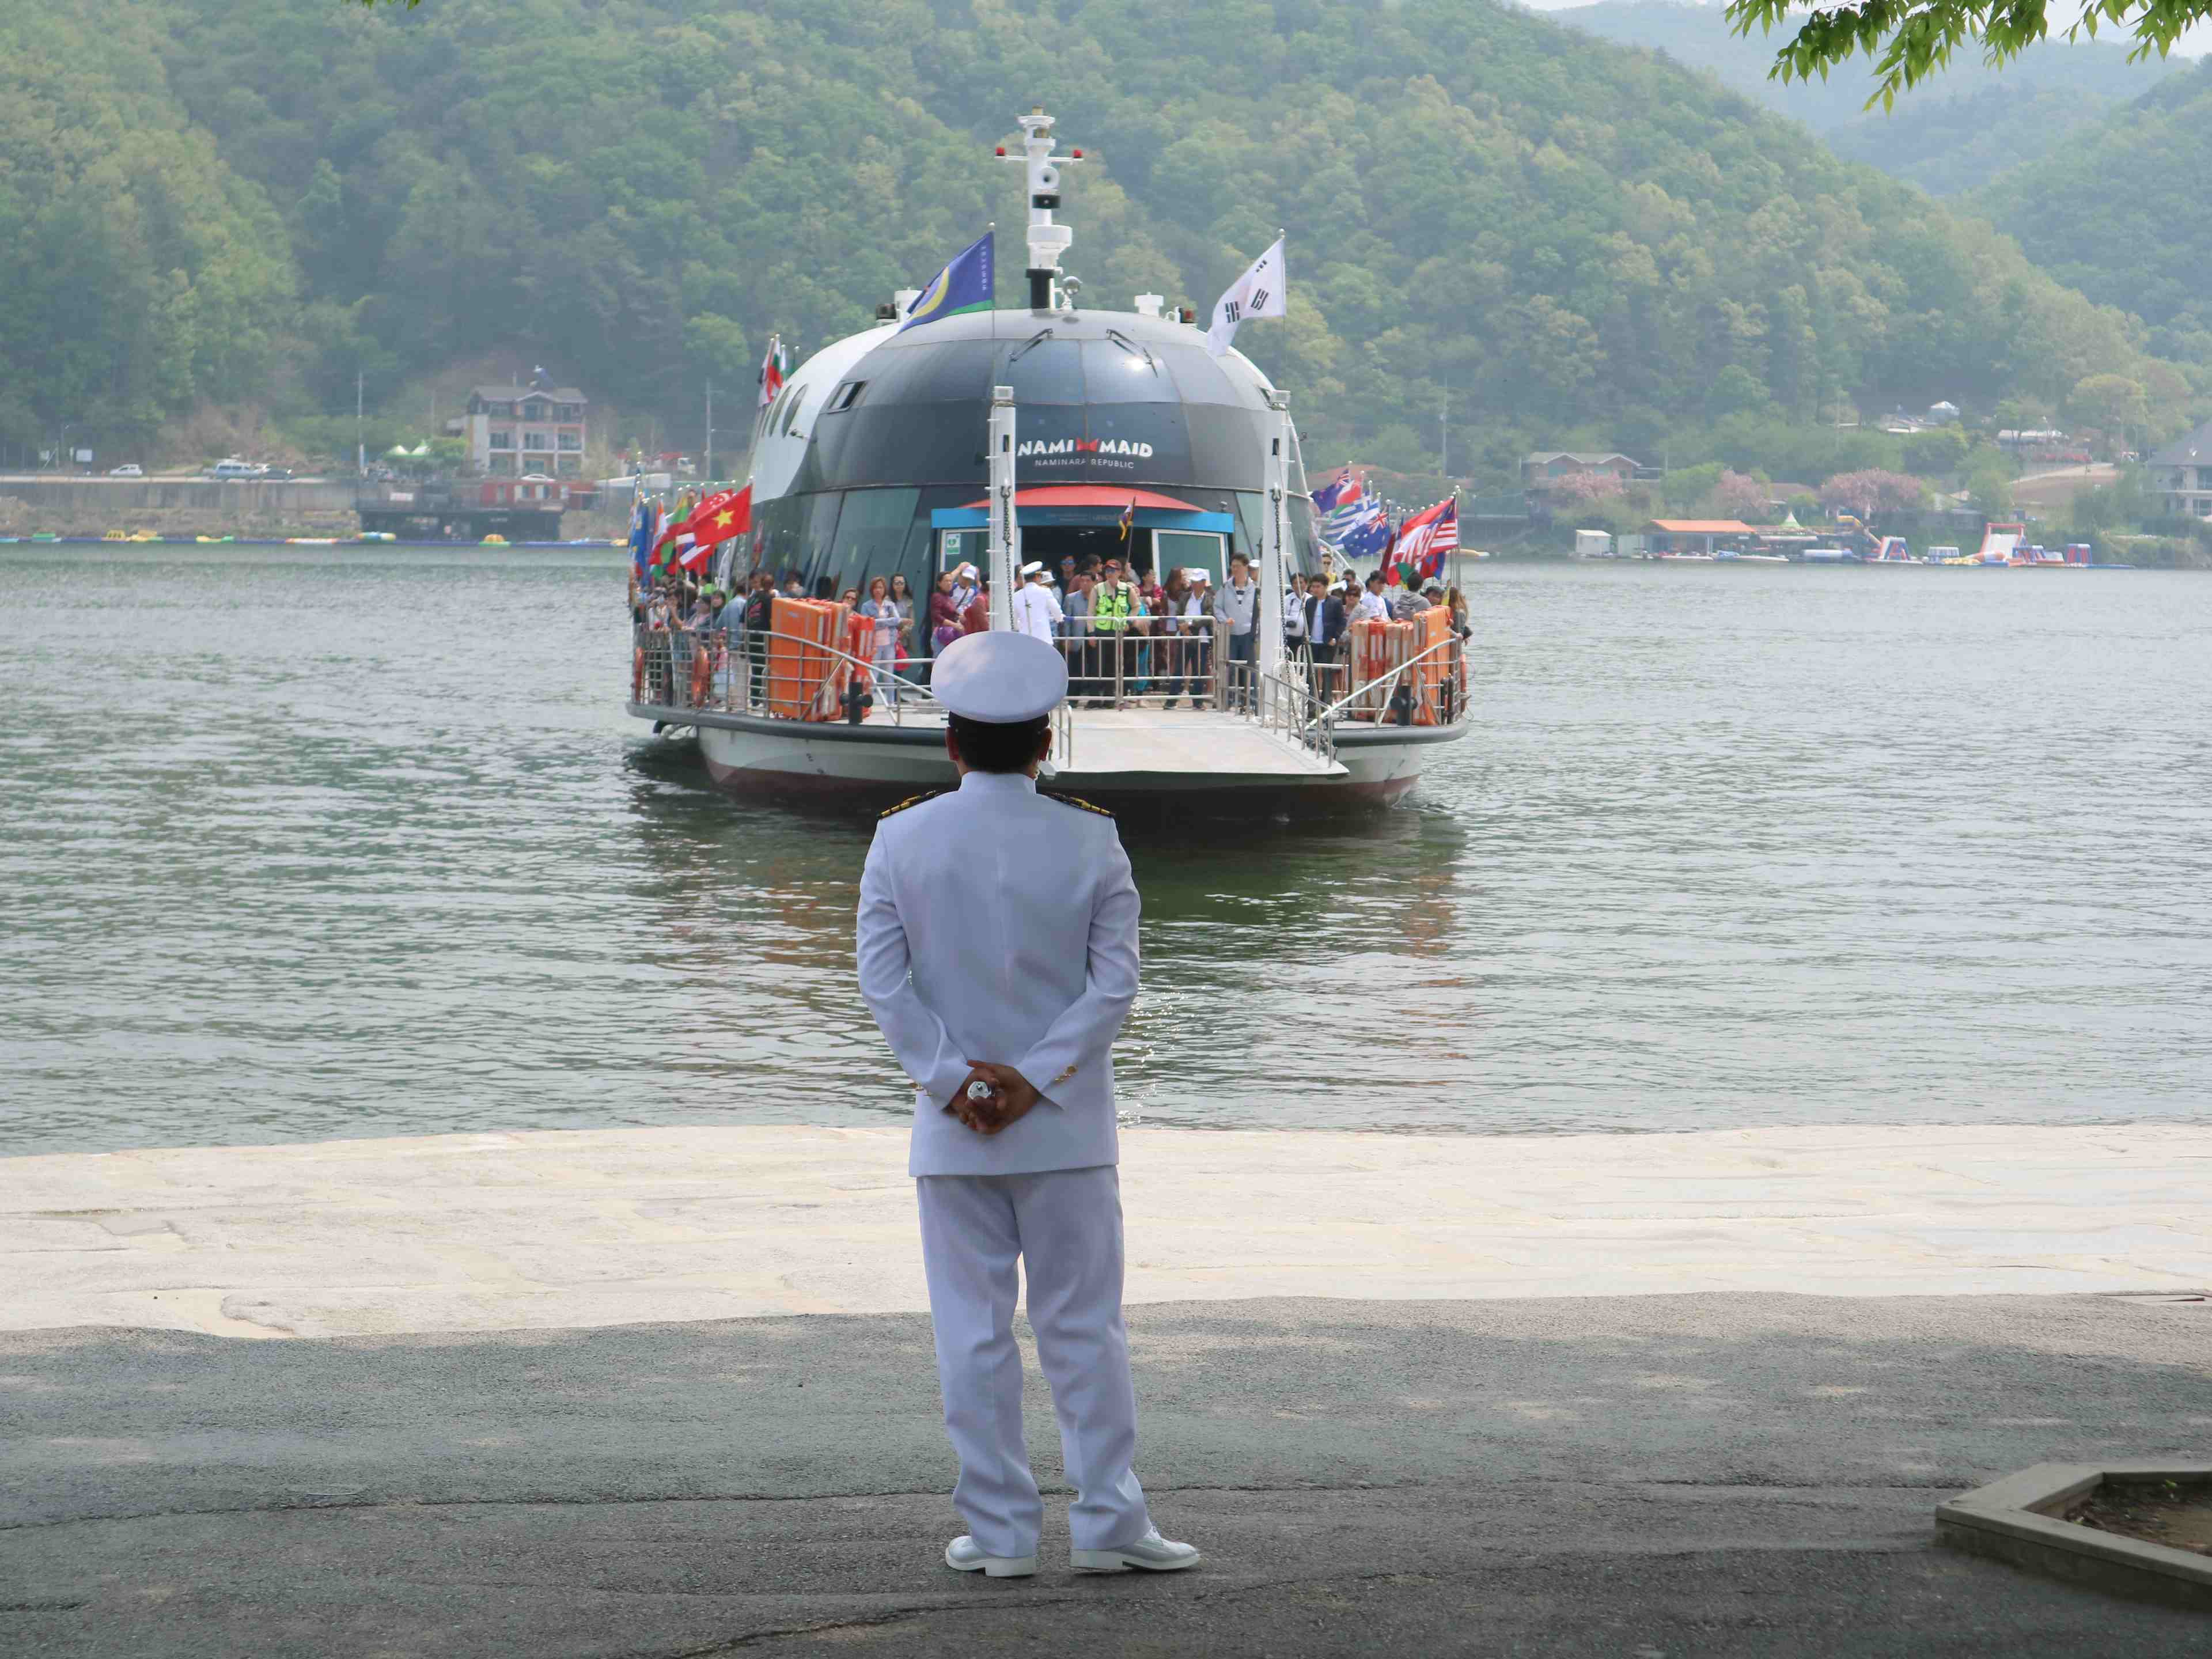 nami-island-south-korea-ferry-coffeehan